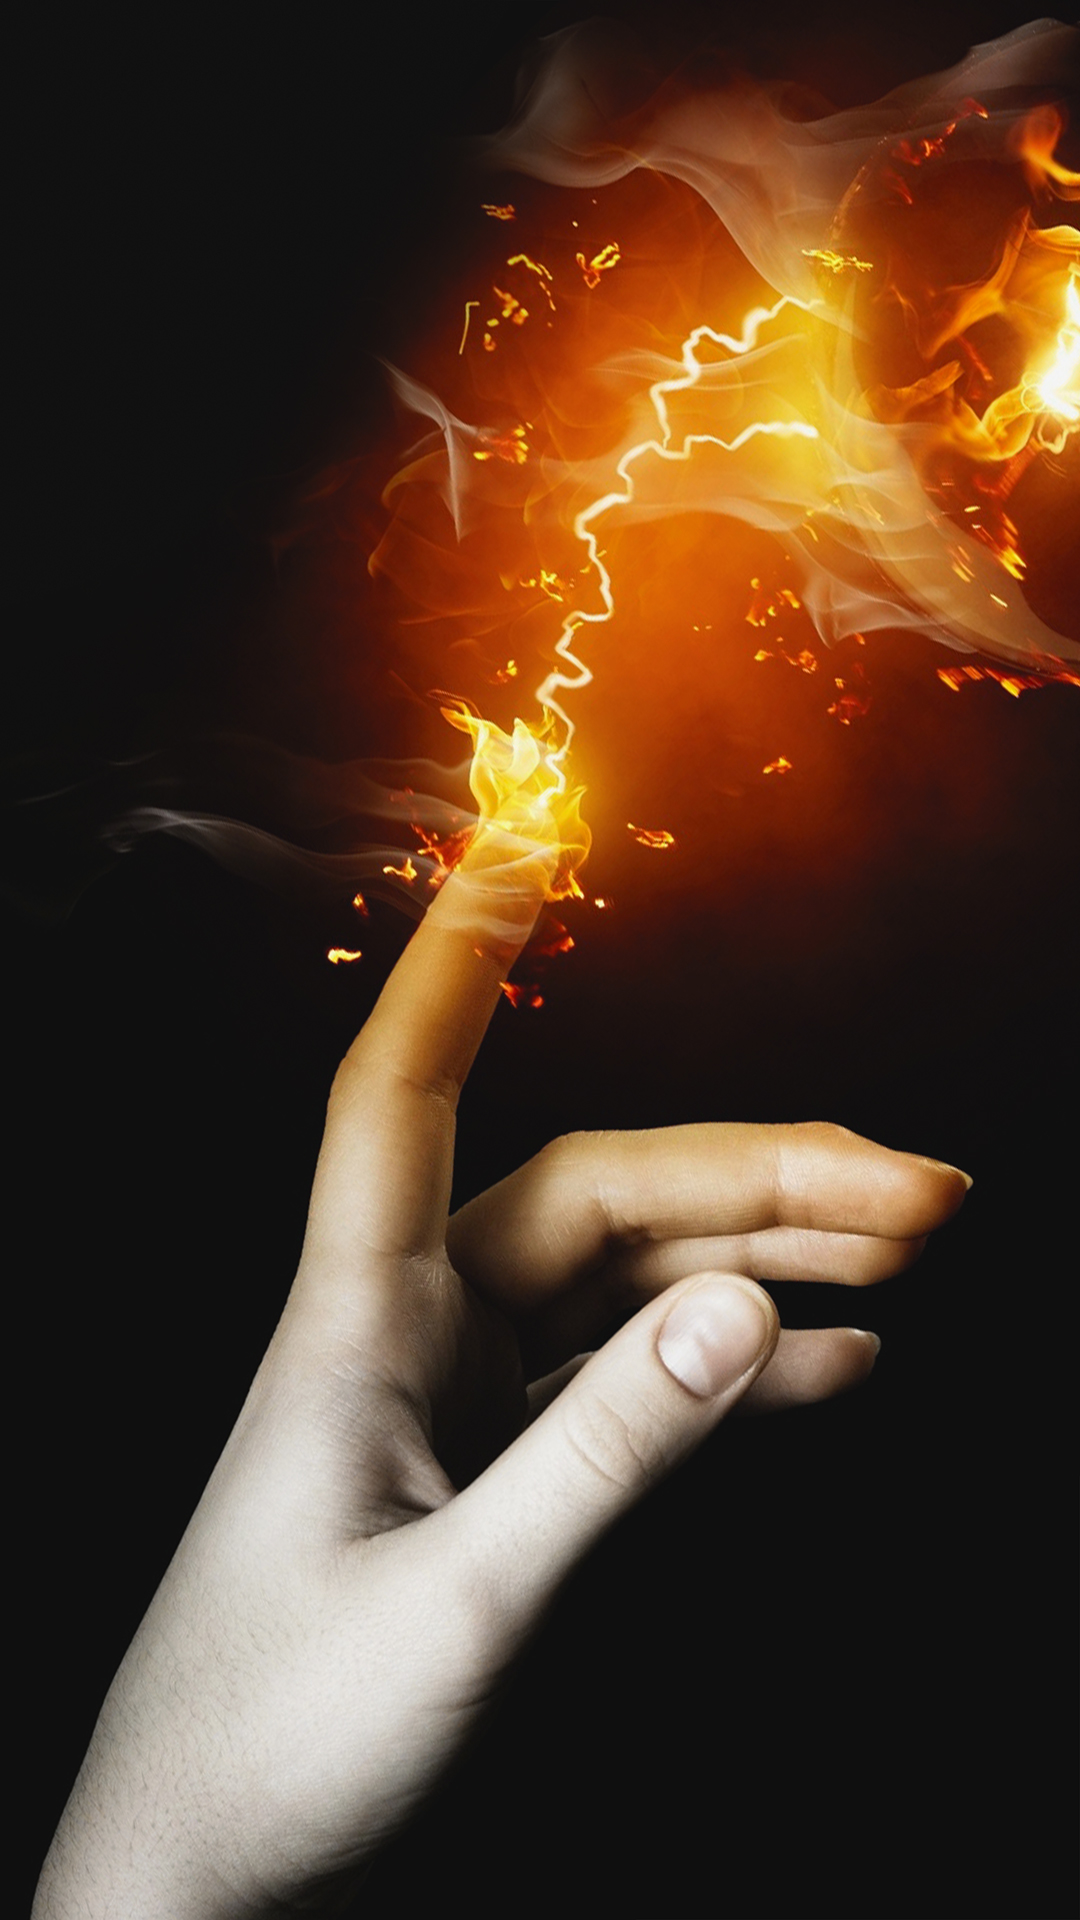 Free Hd Fire Touch Phone Wallpaper6887